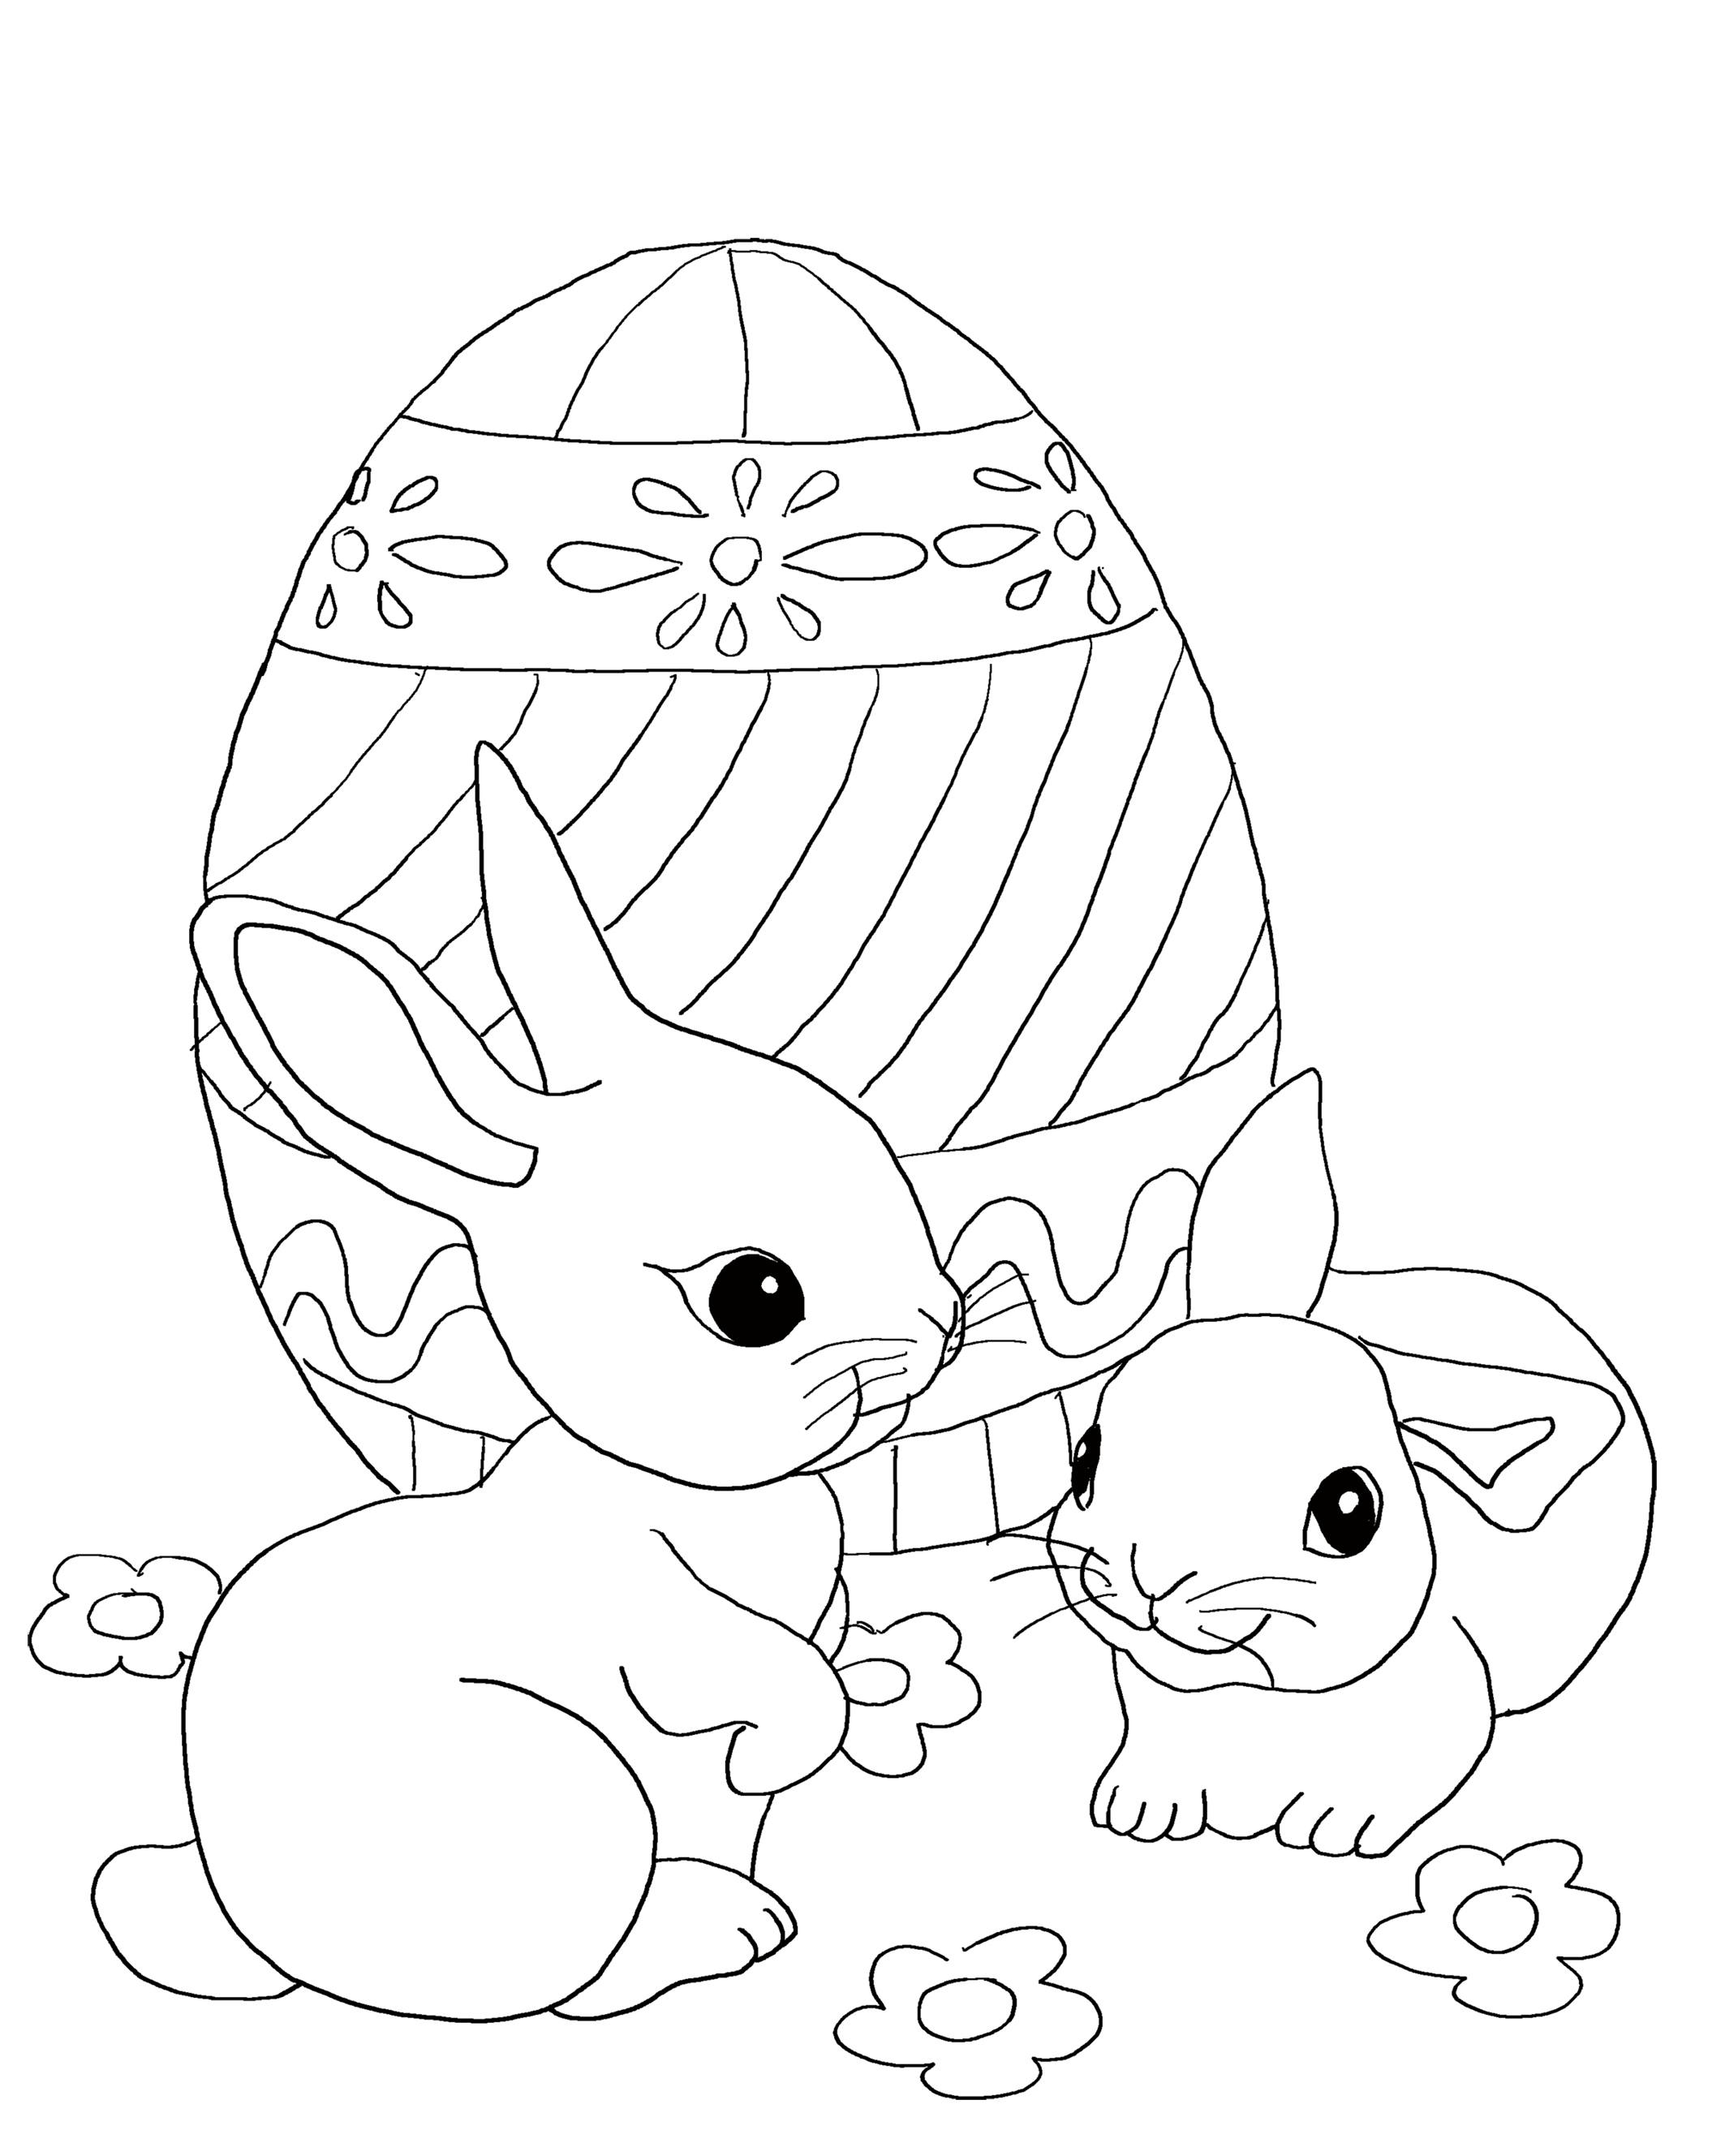 coloring pages easter free easter coloring pages for kids high printing quality easter coloring pages